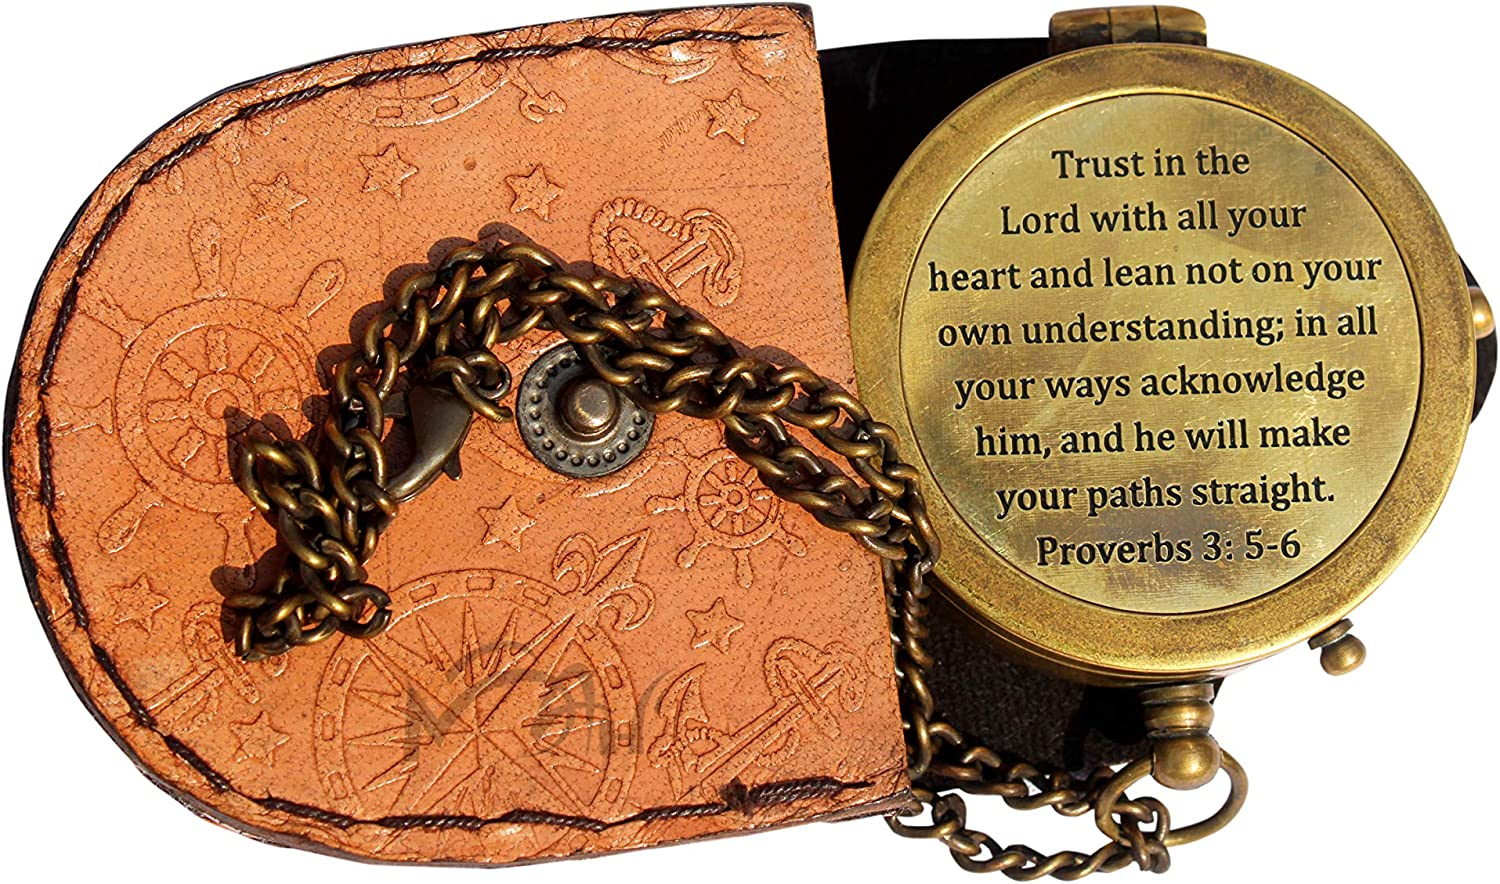 MAH Trust in The Lord with All Your Heart Engraved Compass, Proverbs 3: 5-6 Engraved Gifts, Confirmation Gift Ideas, Religious Gifts, Missionary Gifts with Leather Case. C-3004